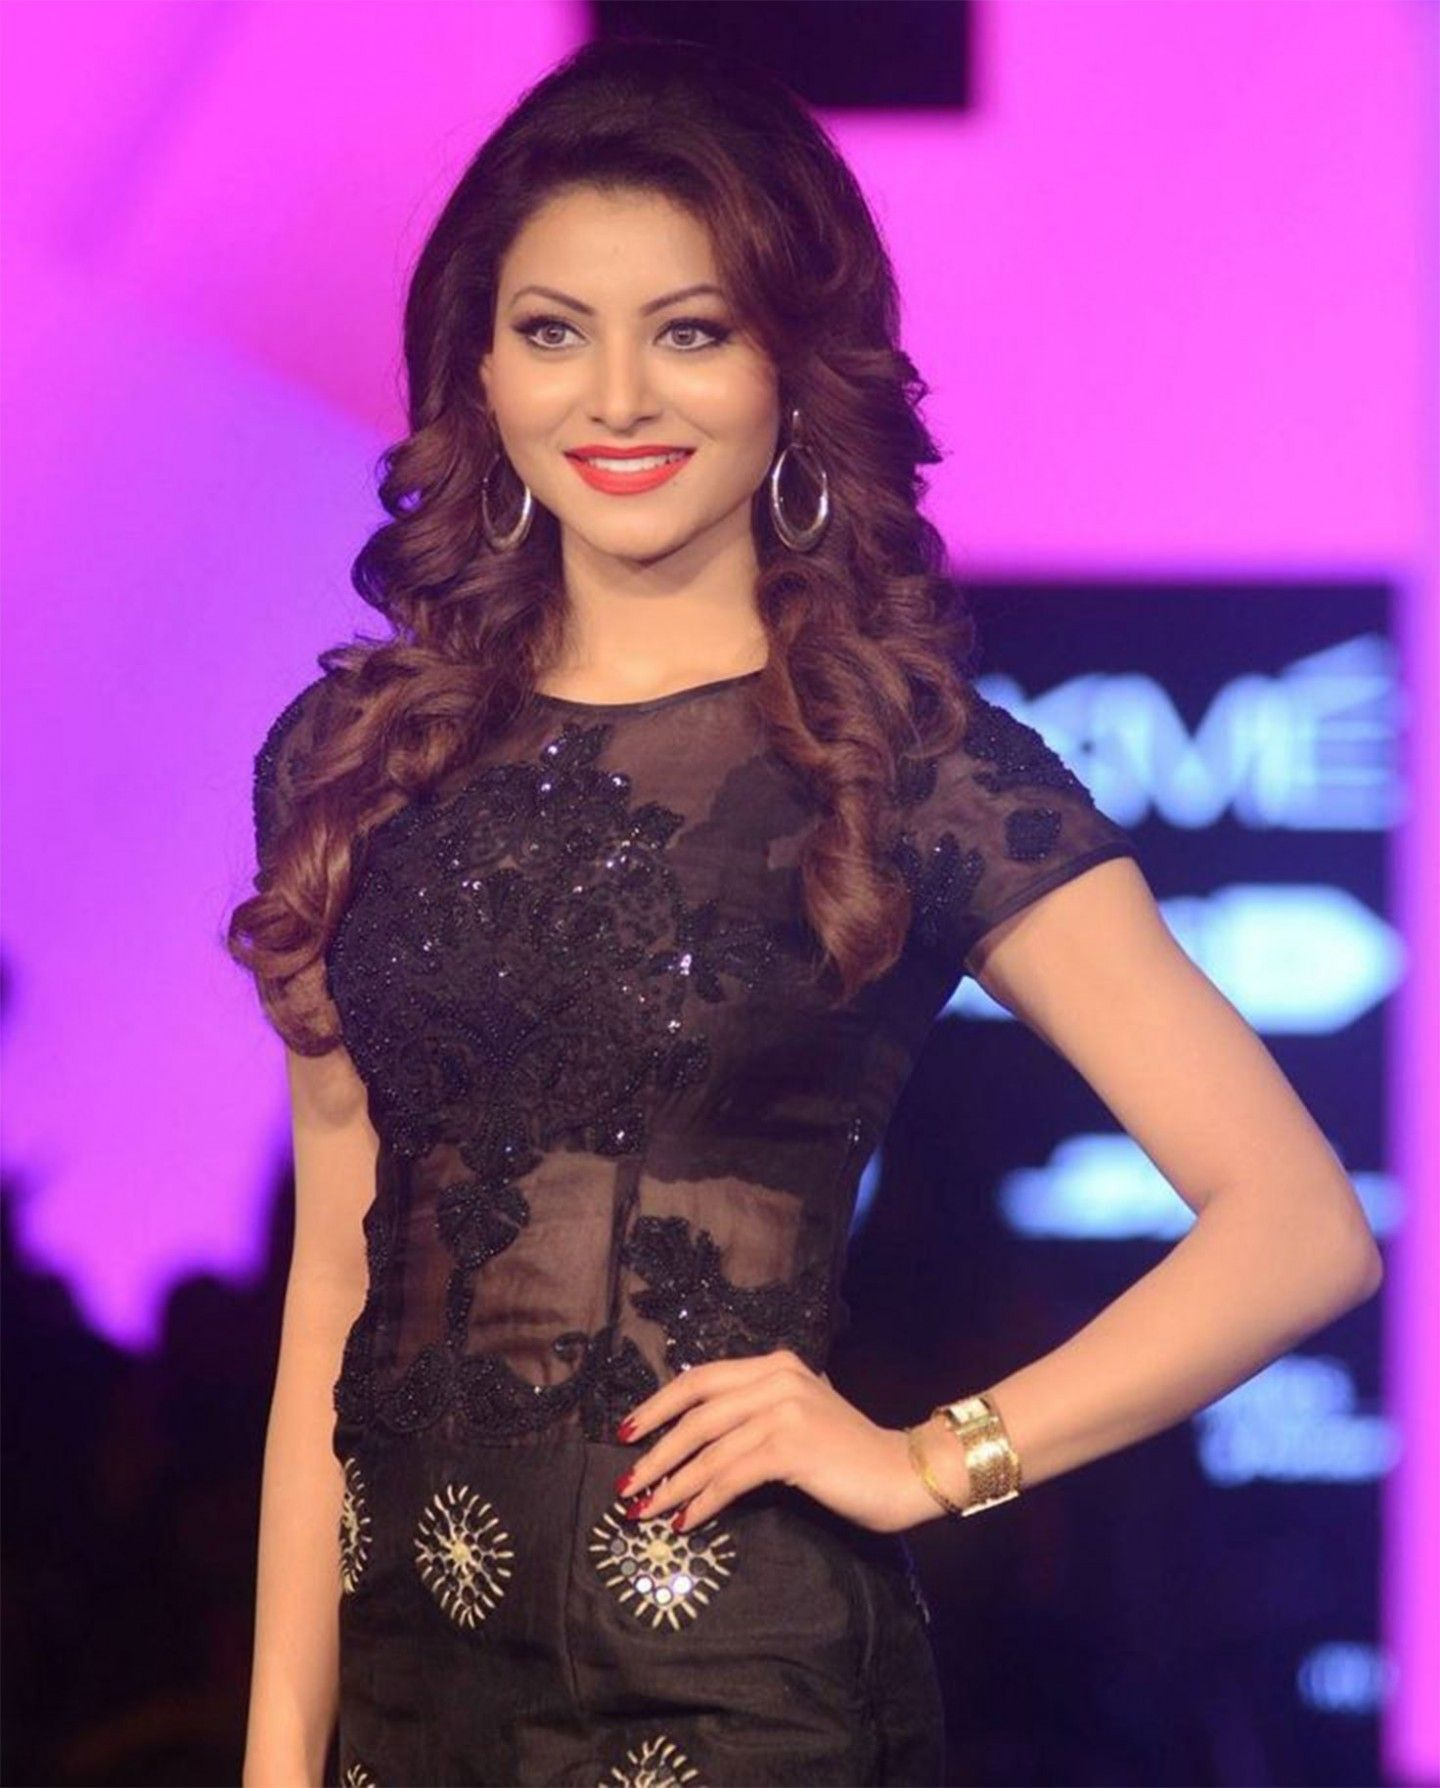 Hd wallpaper urvashi - 50 Best Urvashi Rautela Hd Wallpapers And Photos